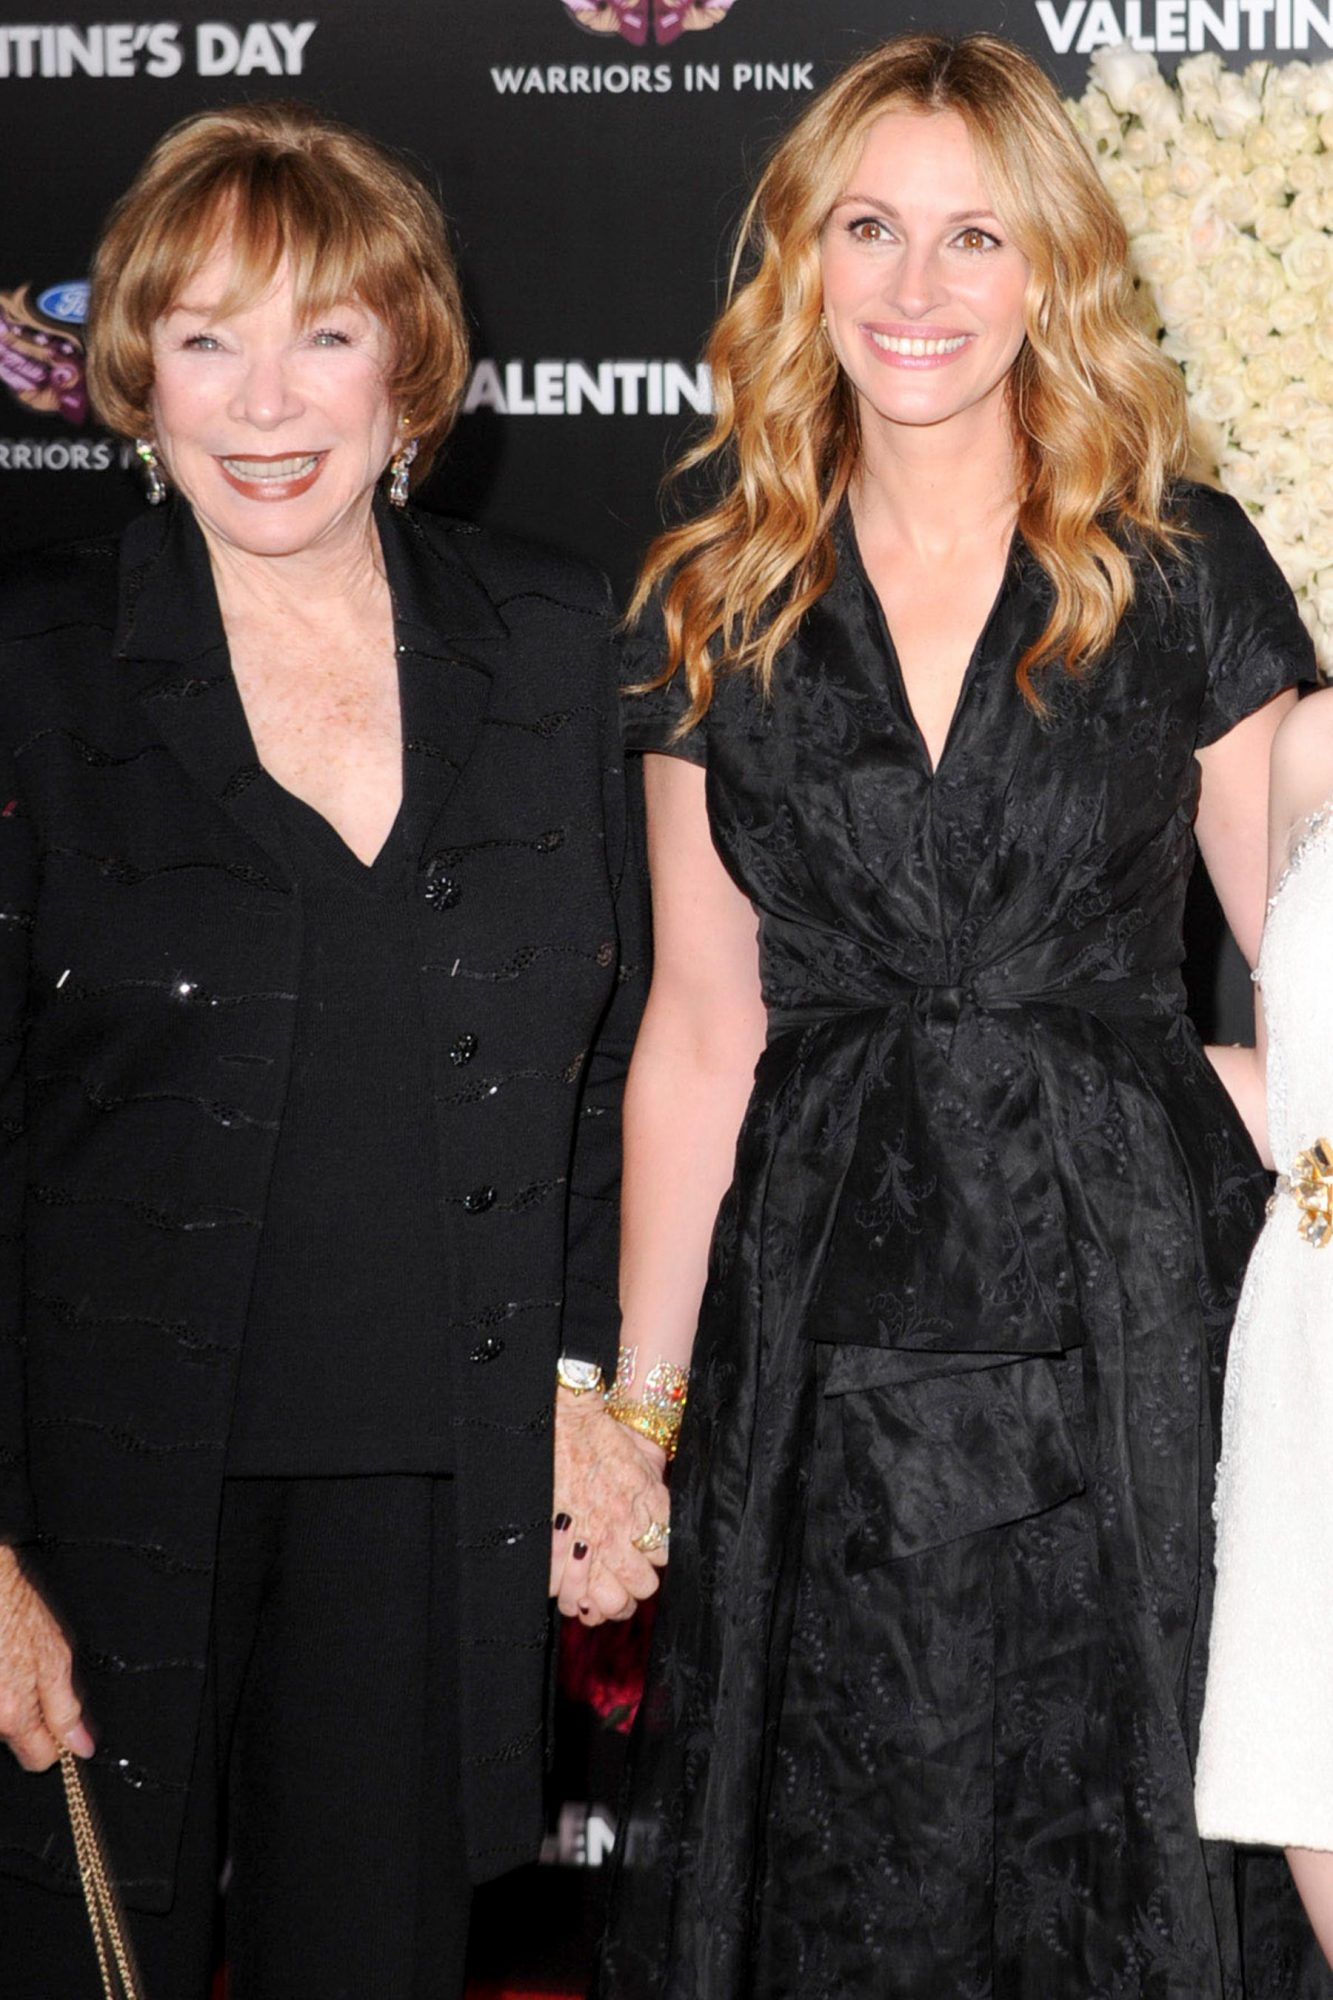 """HOLLYWOOD - FEBRUARY 08: Shirley Maclaine and Julia Roberts and Emma Roberts attends the """"Valentine's Day"""" Los Angeles Premiere at Grauman's Chinese Theatre on February 8, 2010 in Hollywood, California. (Photo by Steve Granitz/WireImage)"""